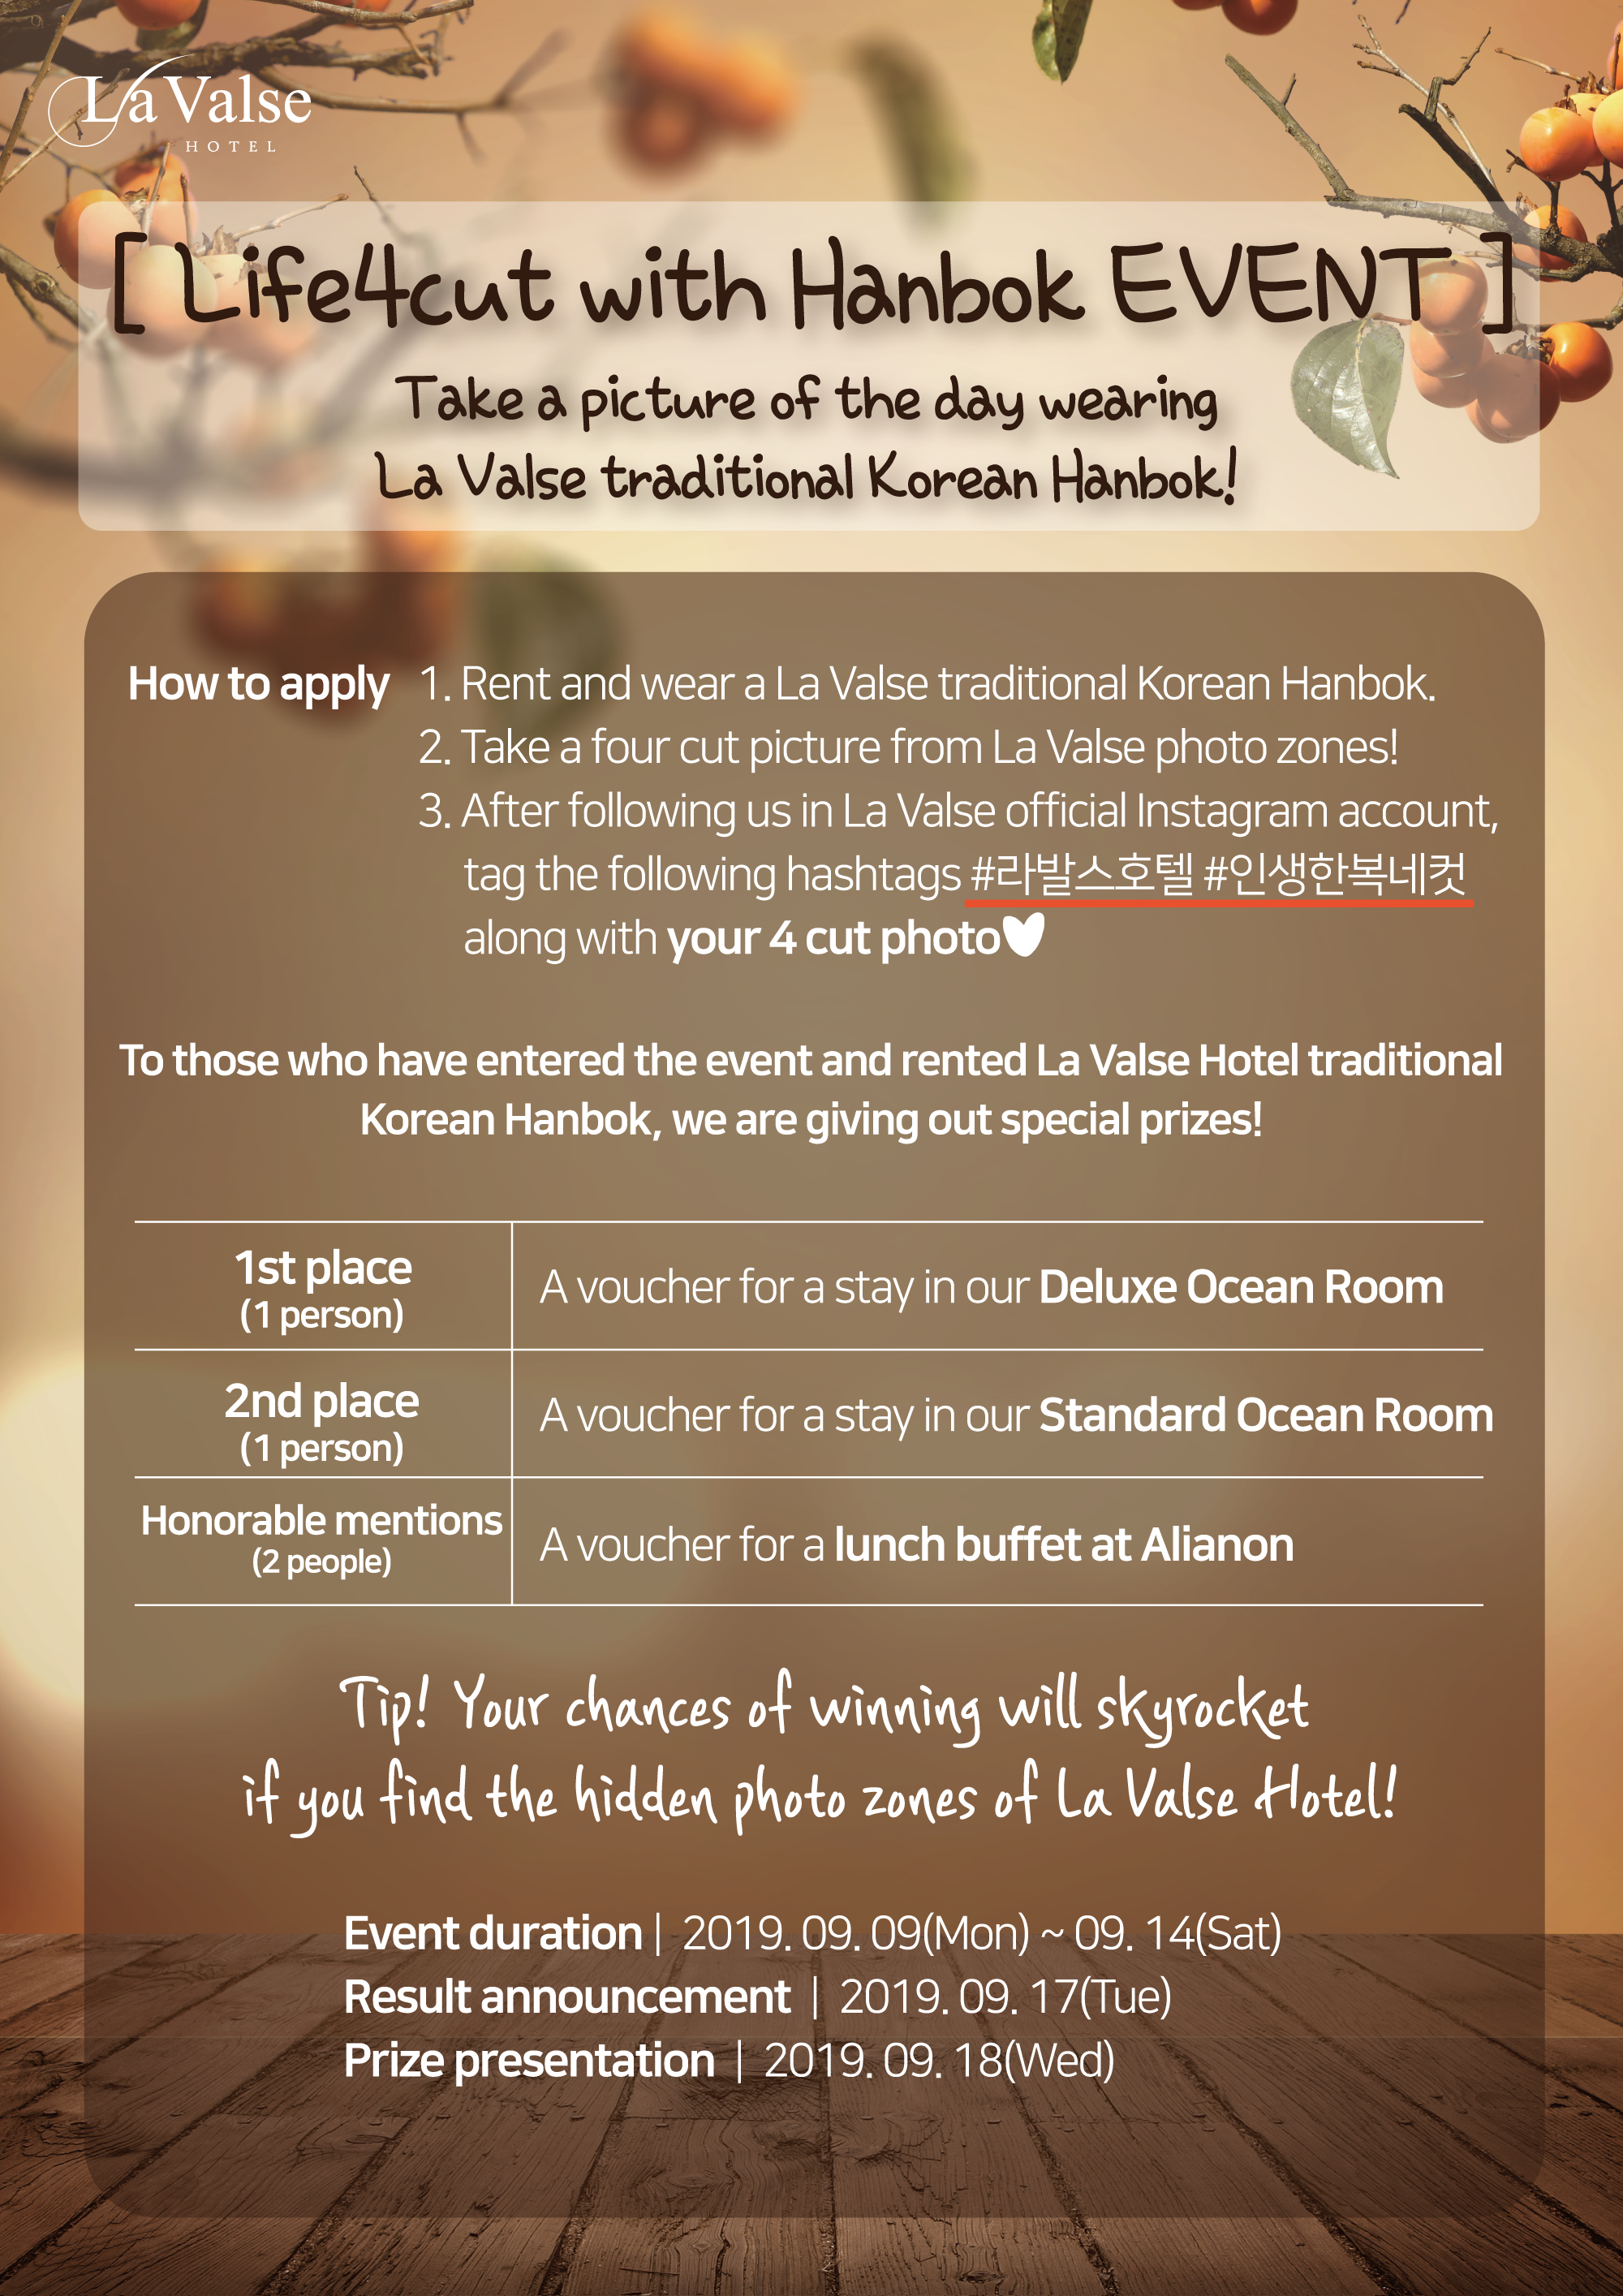 Life4cut with Hanbok EVENT